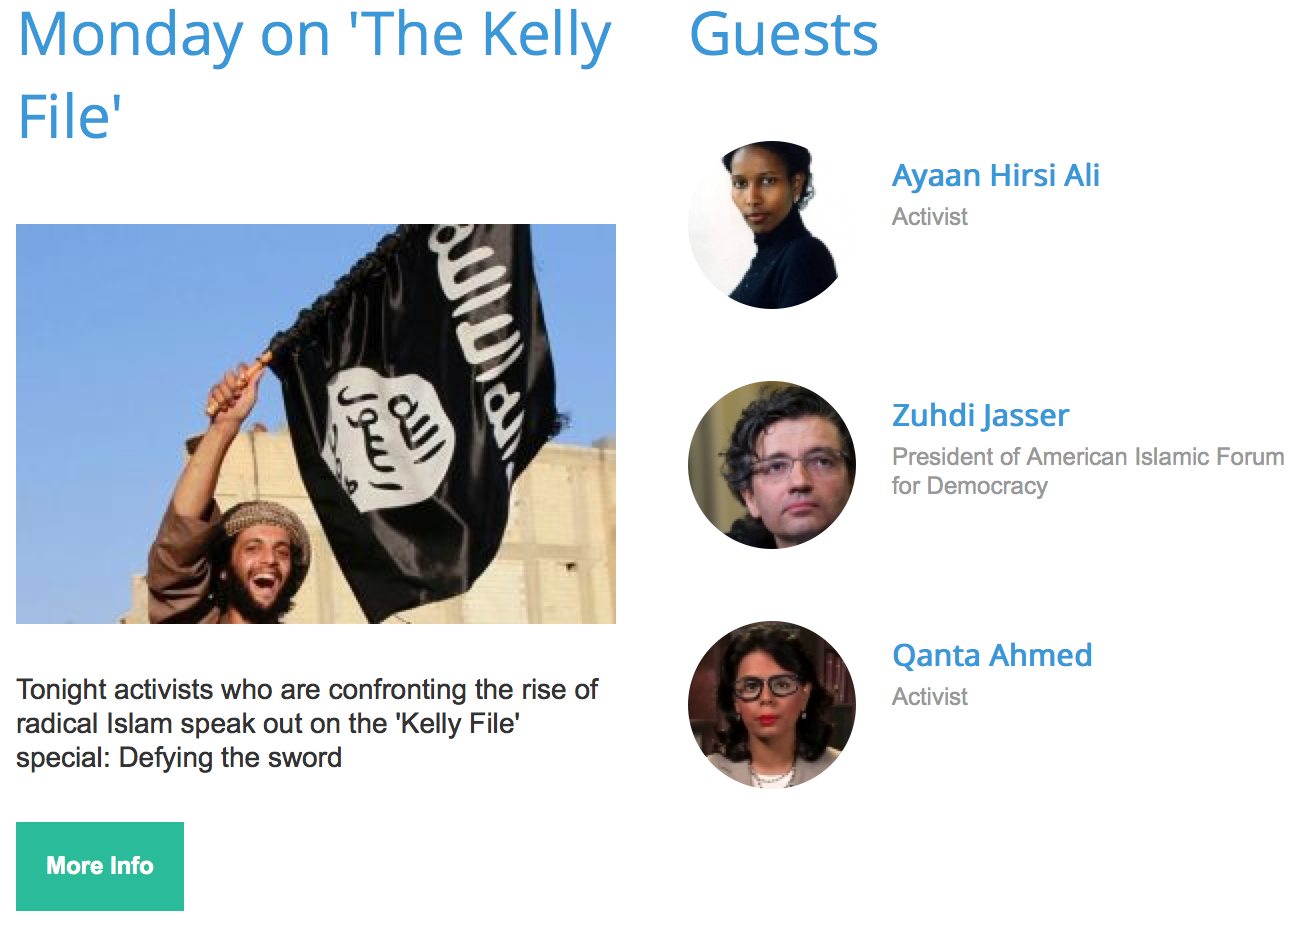 Kelly_File_Islam_guests.png